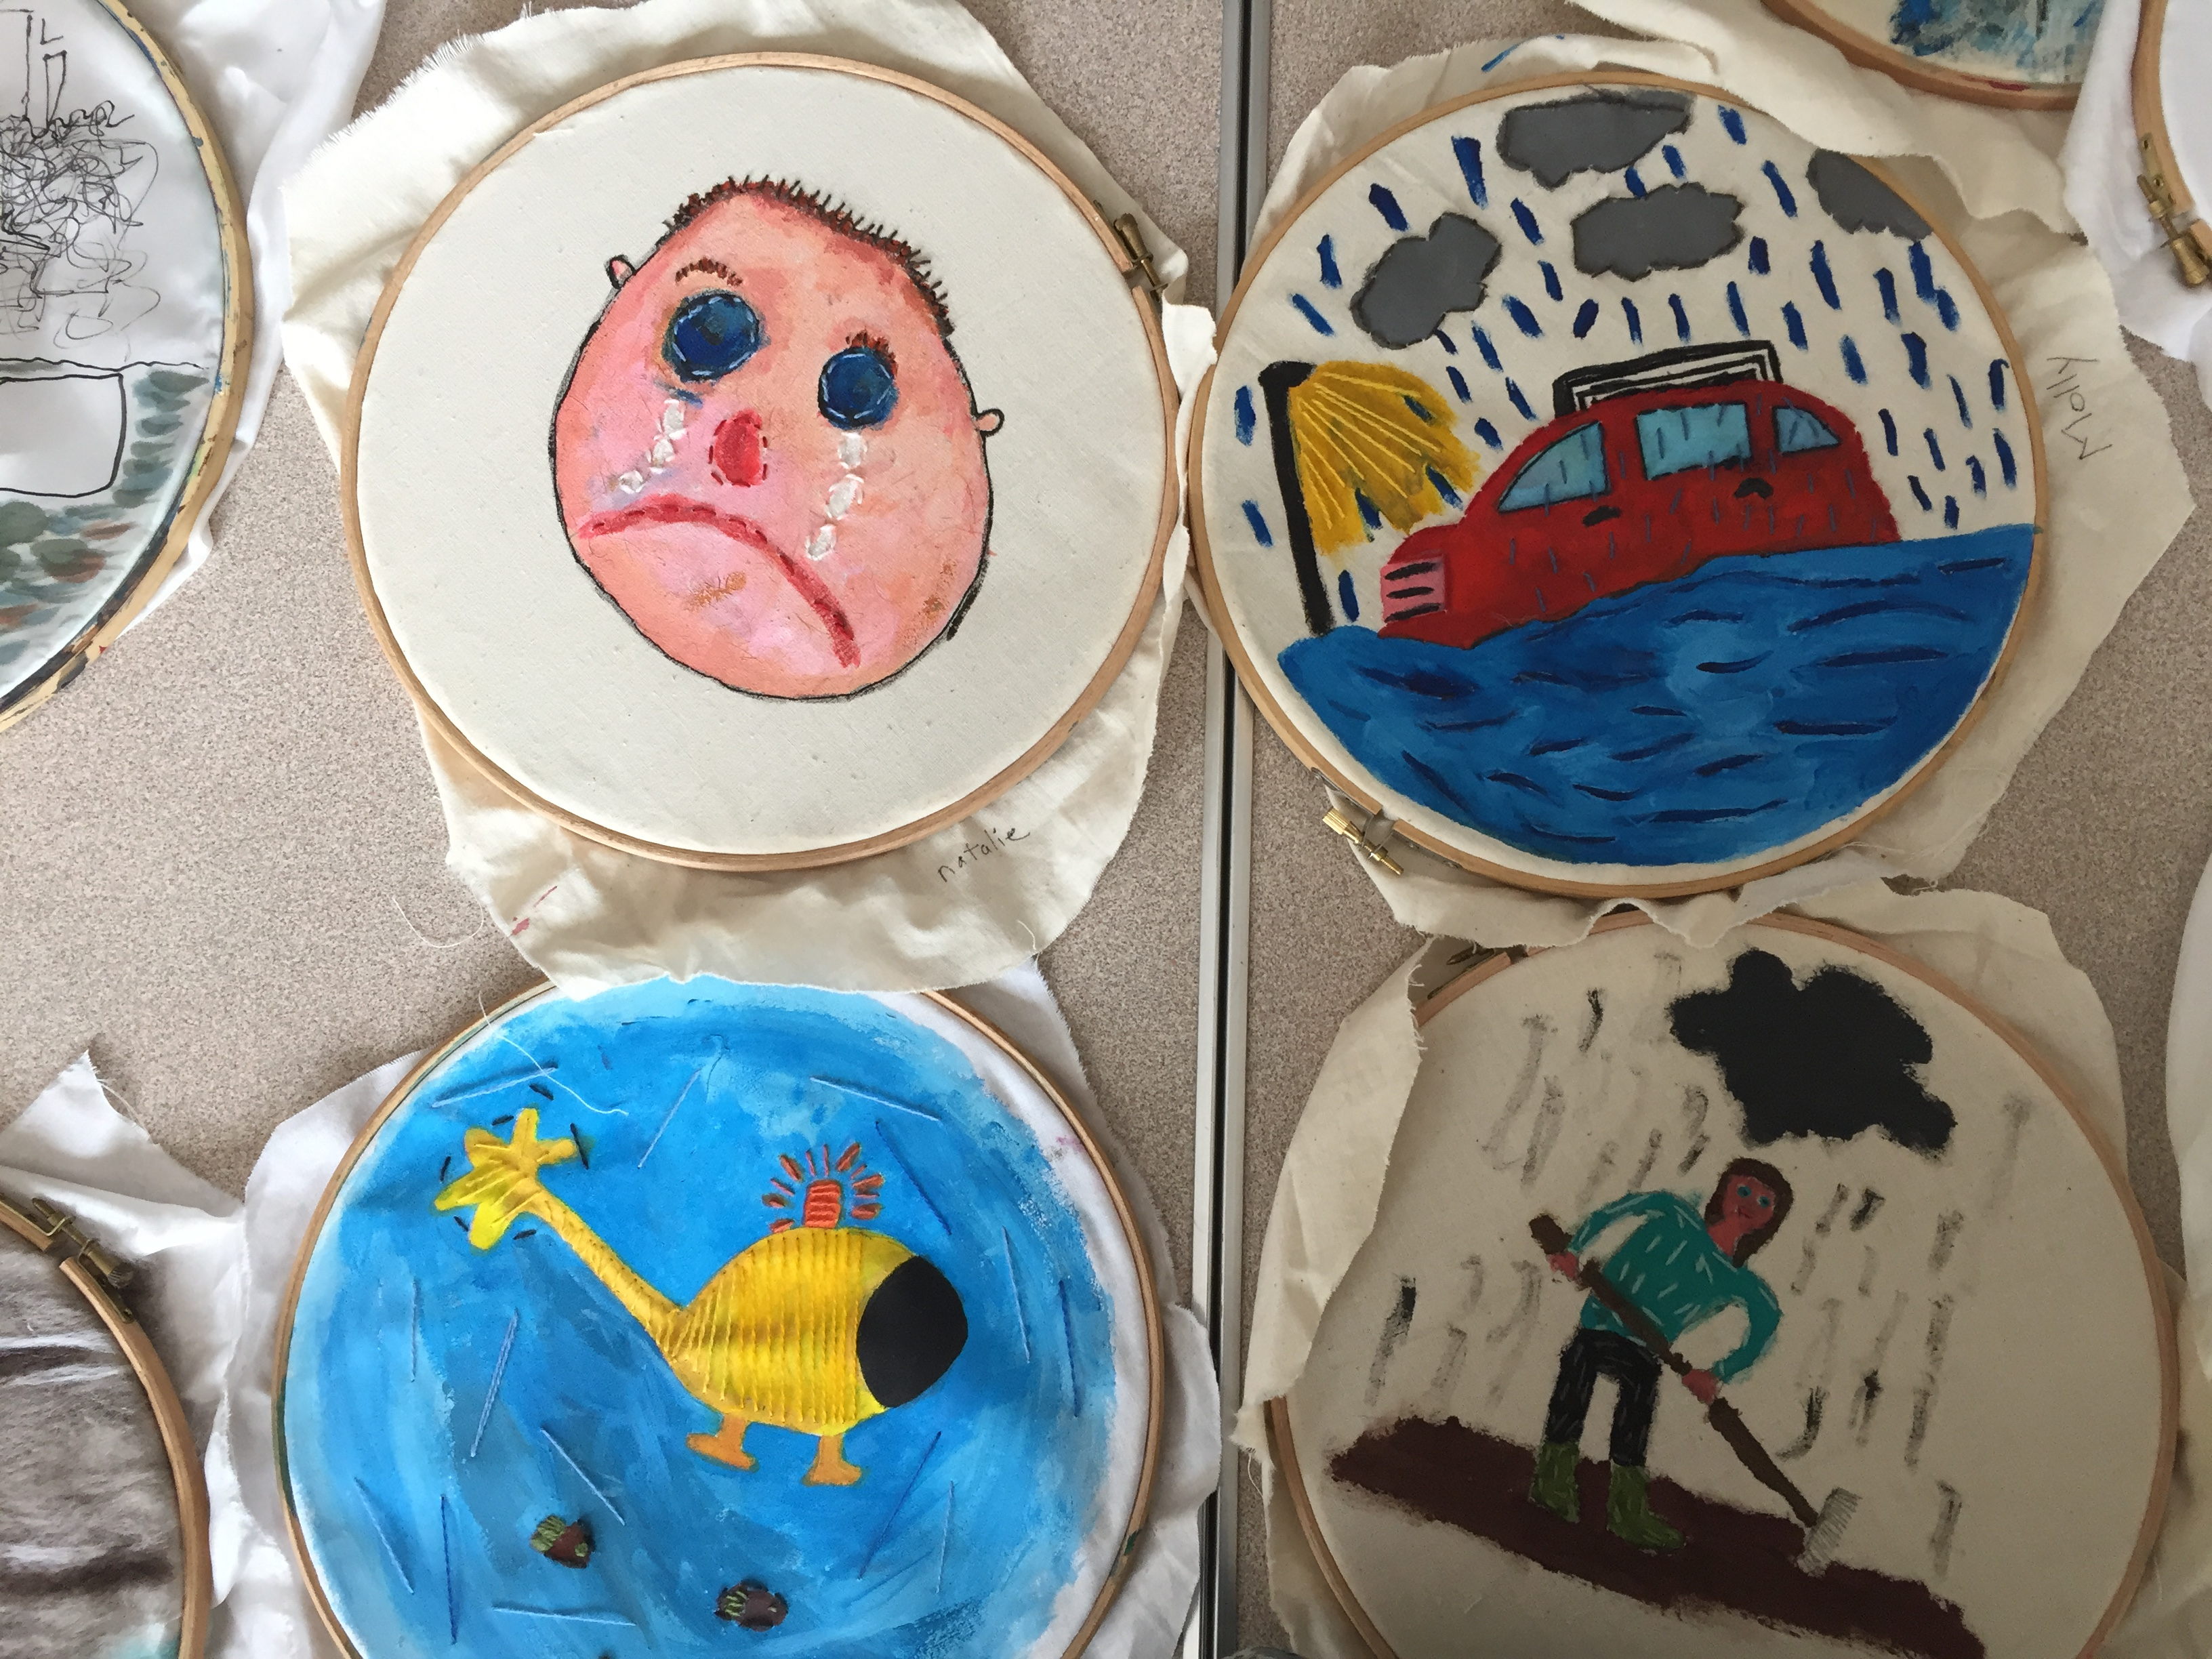 Children expressed feelings and emotions felt during and after the floods of Dec 2015.